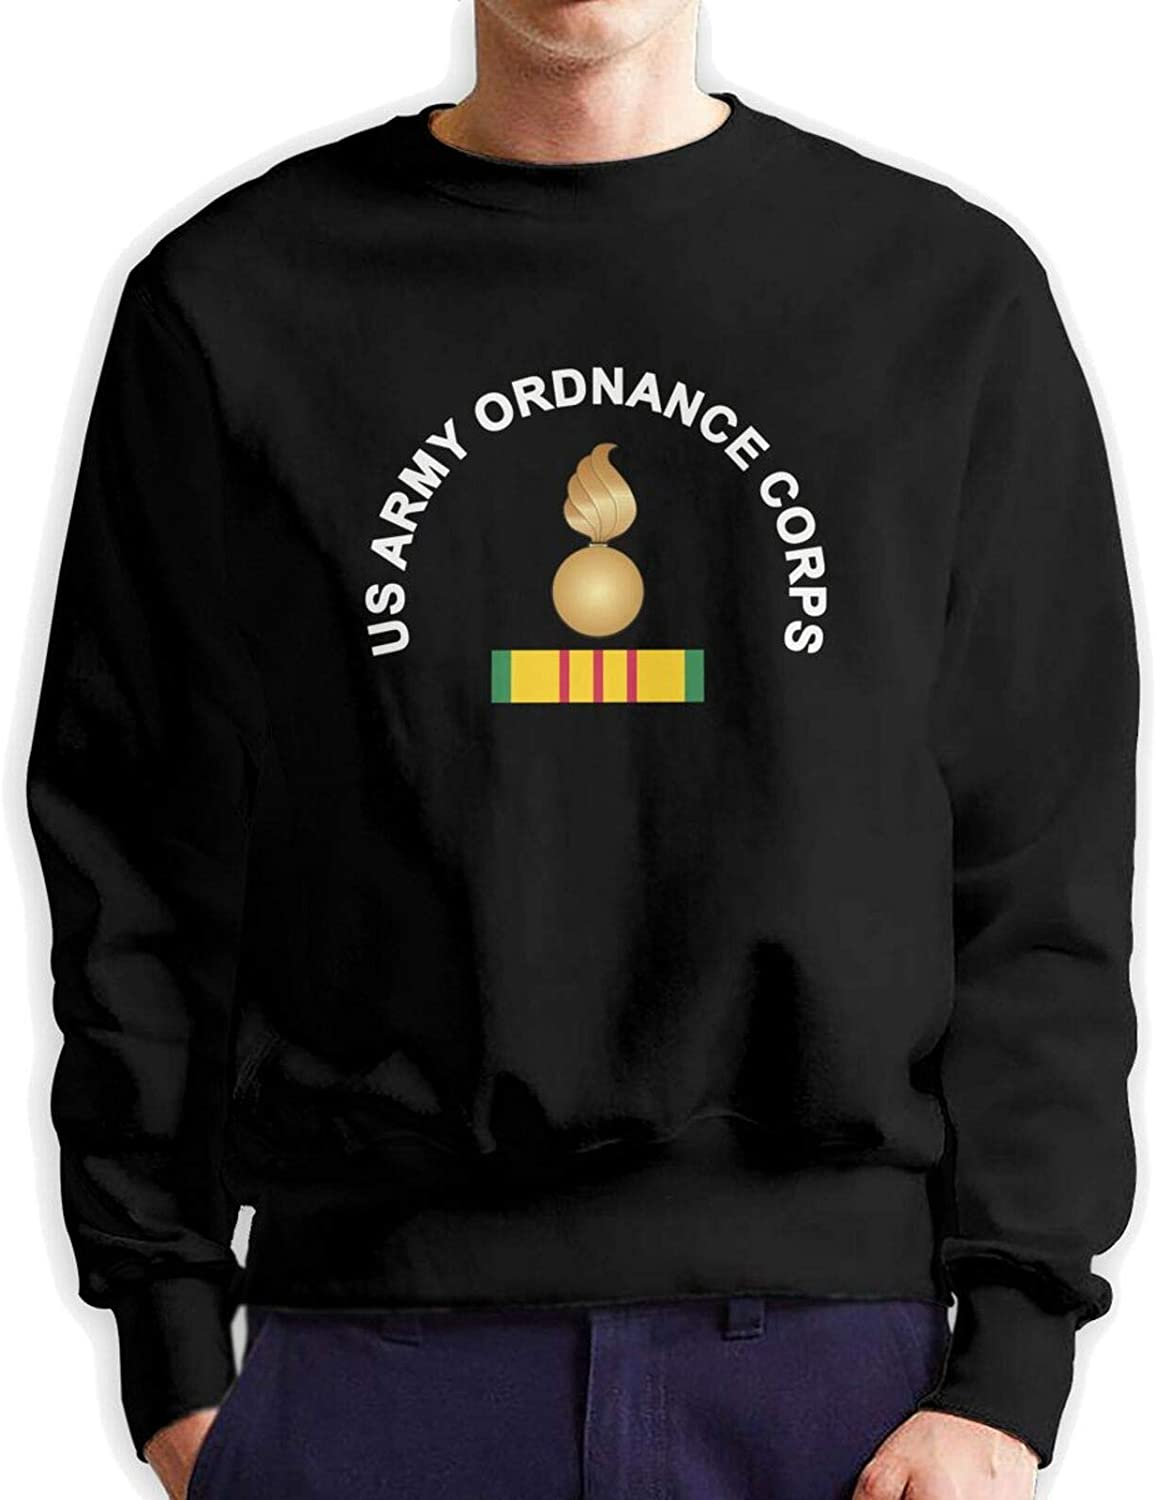 Us Army gift Ordnance Corps Man Crew Neck Cotton Hoodie Hoo Authentic Boston Mall